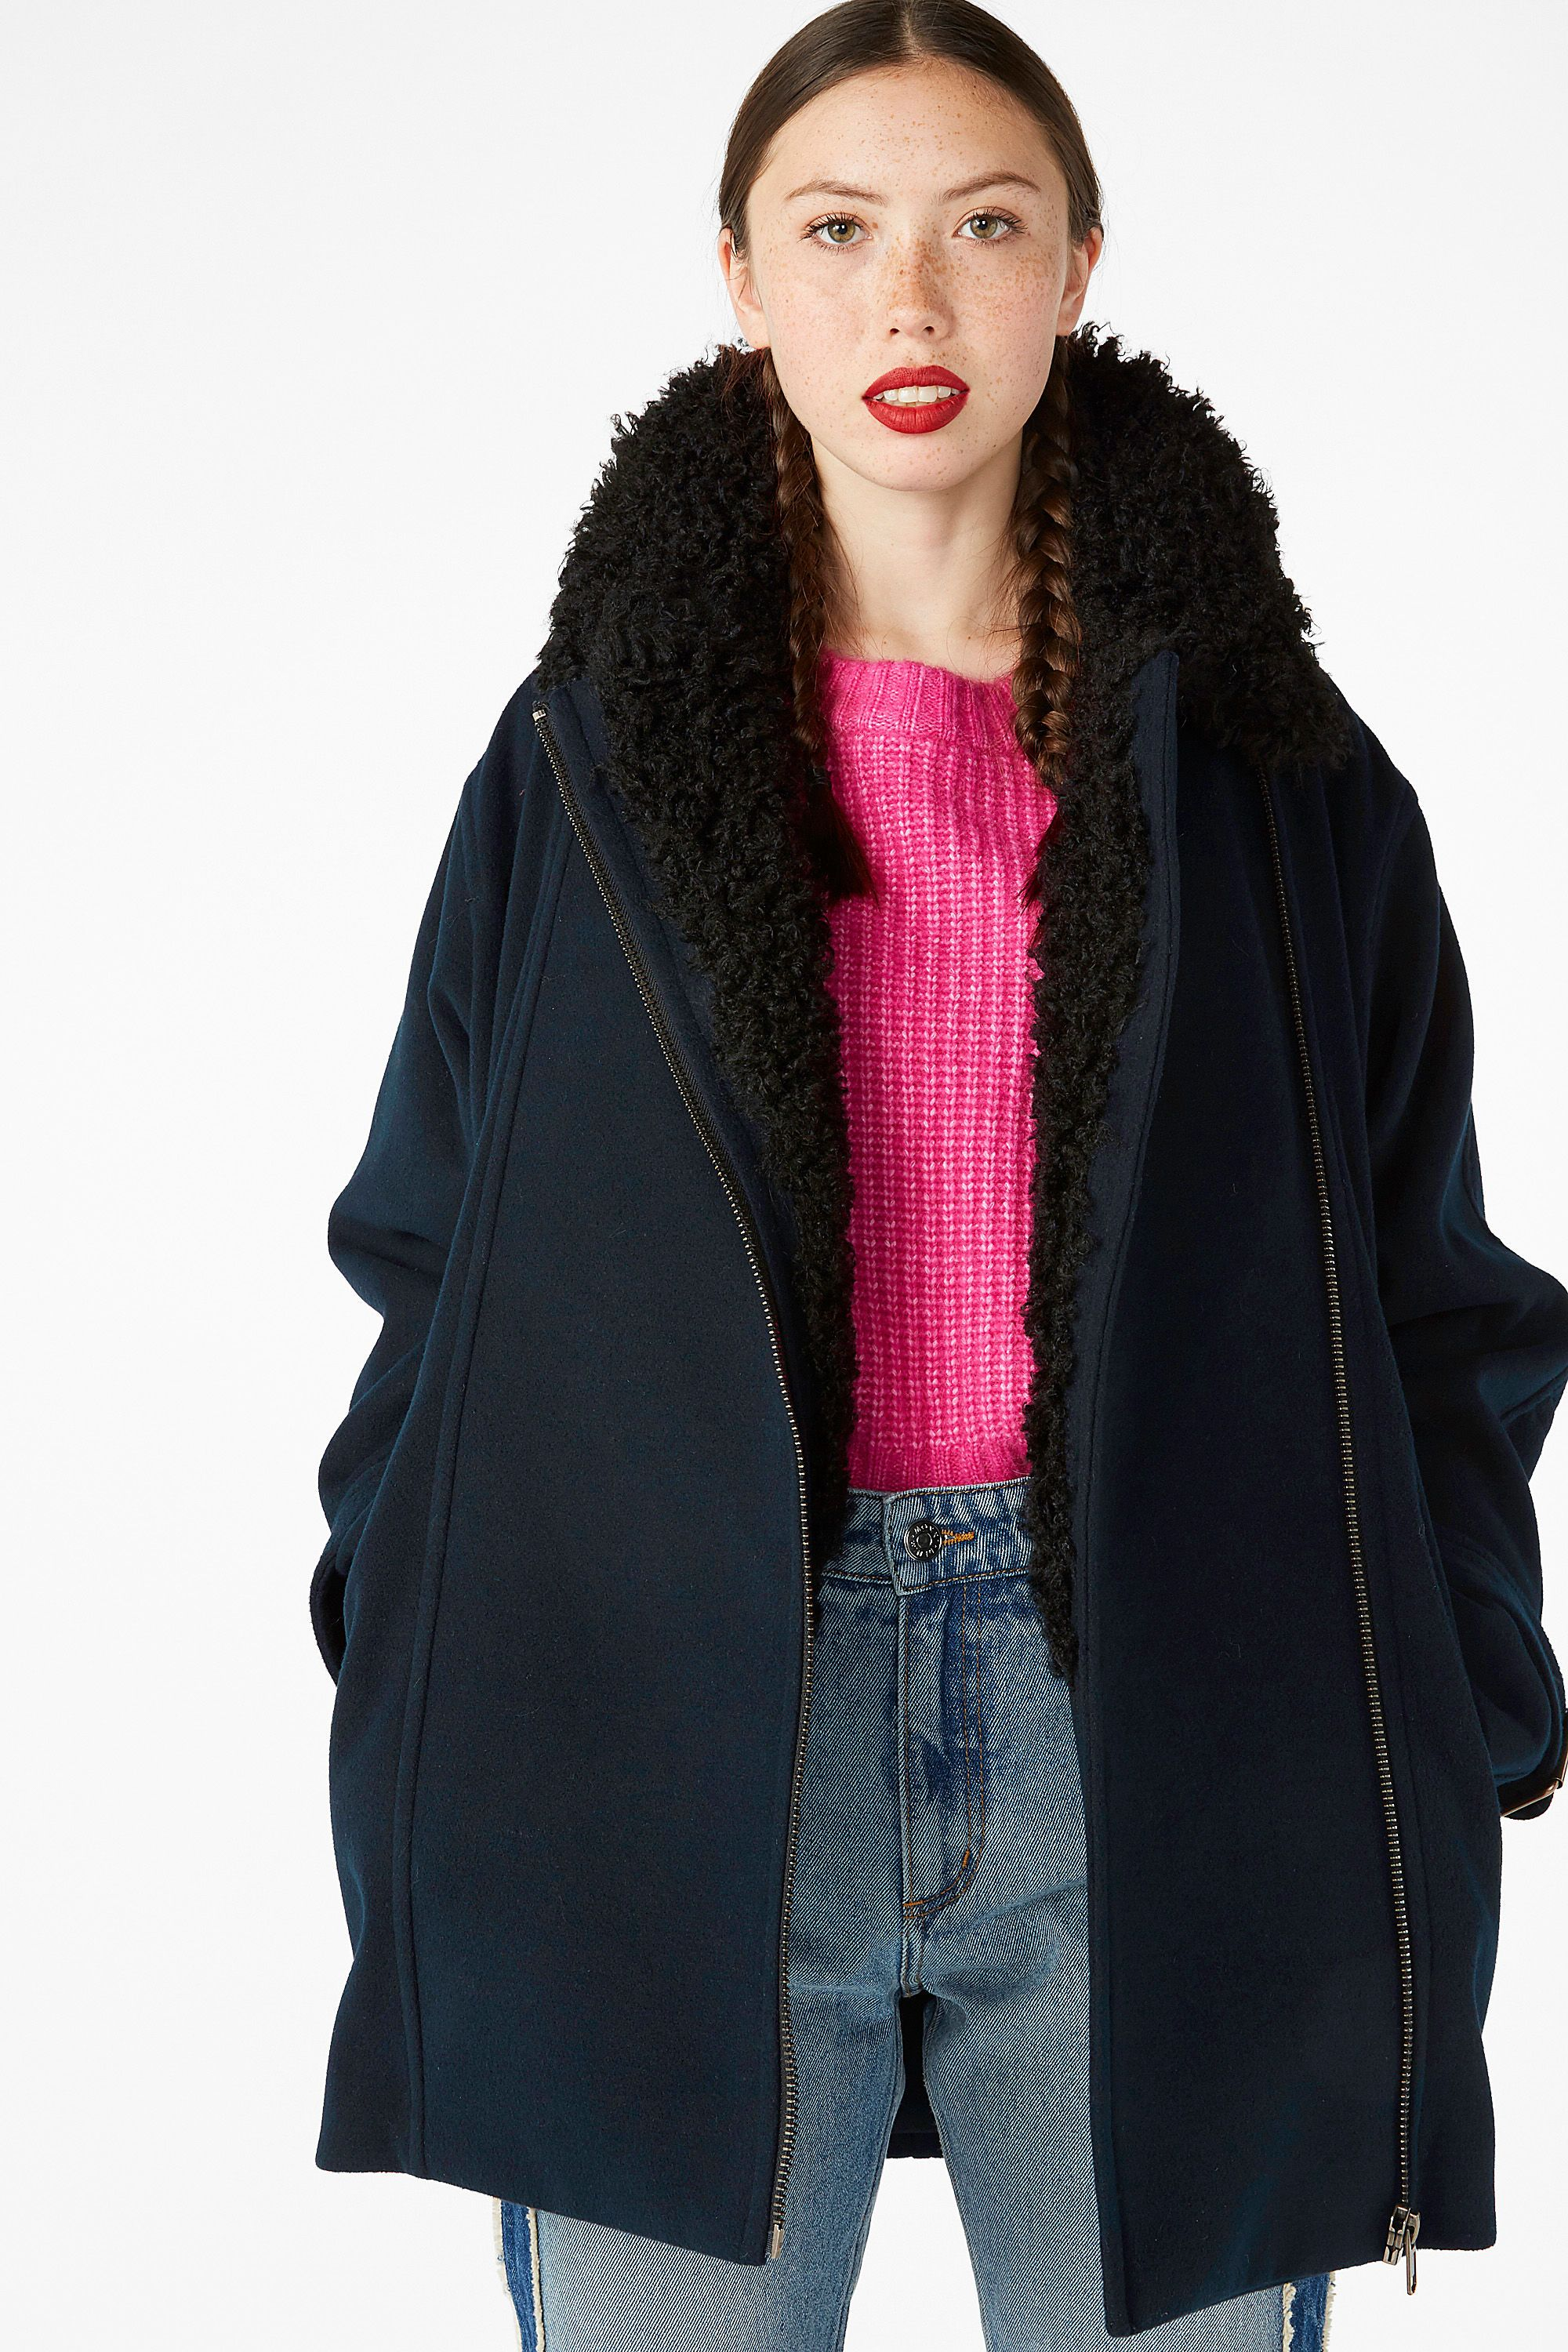 1480bcecfcf560 Coat with faux shearling collar - Black magic - Coats   Jackets - Monki GB